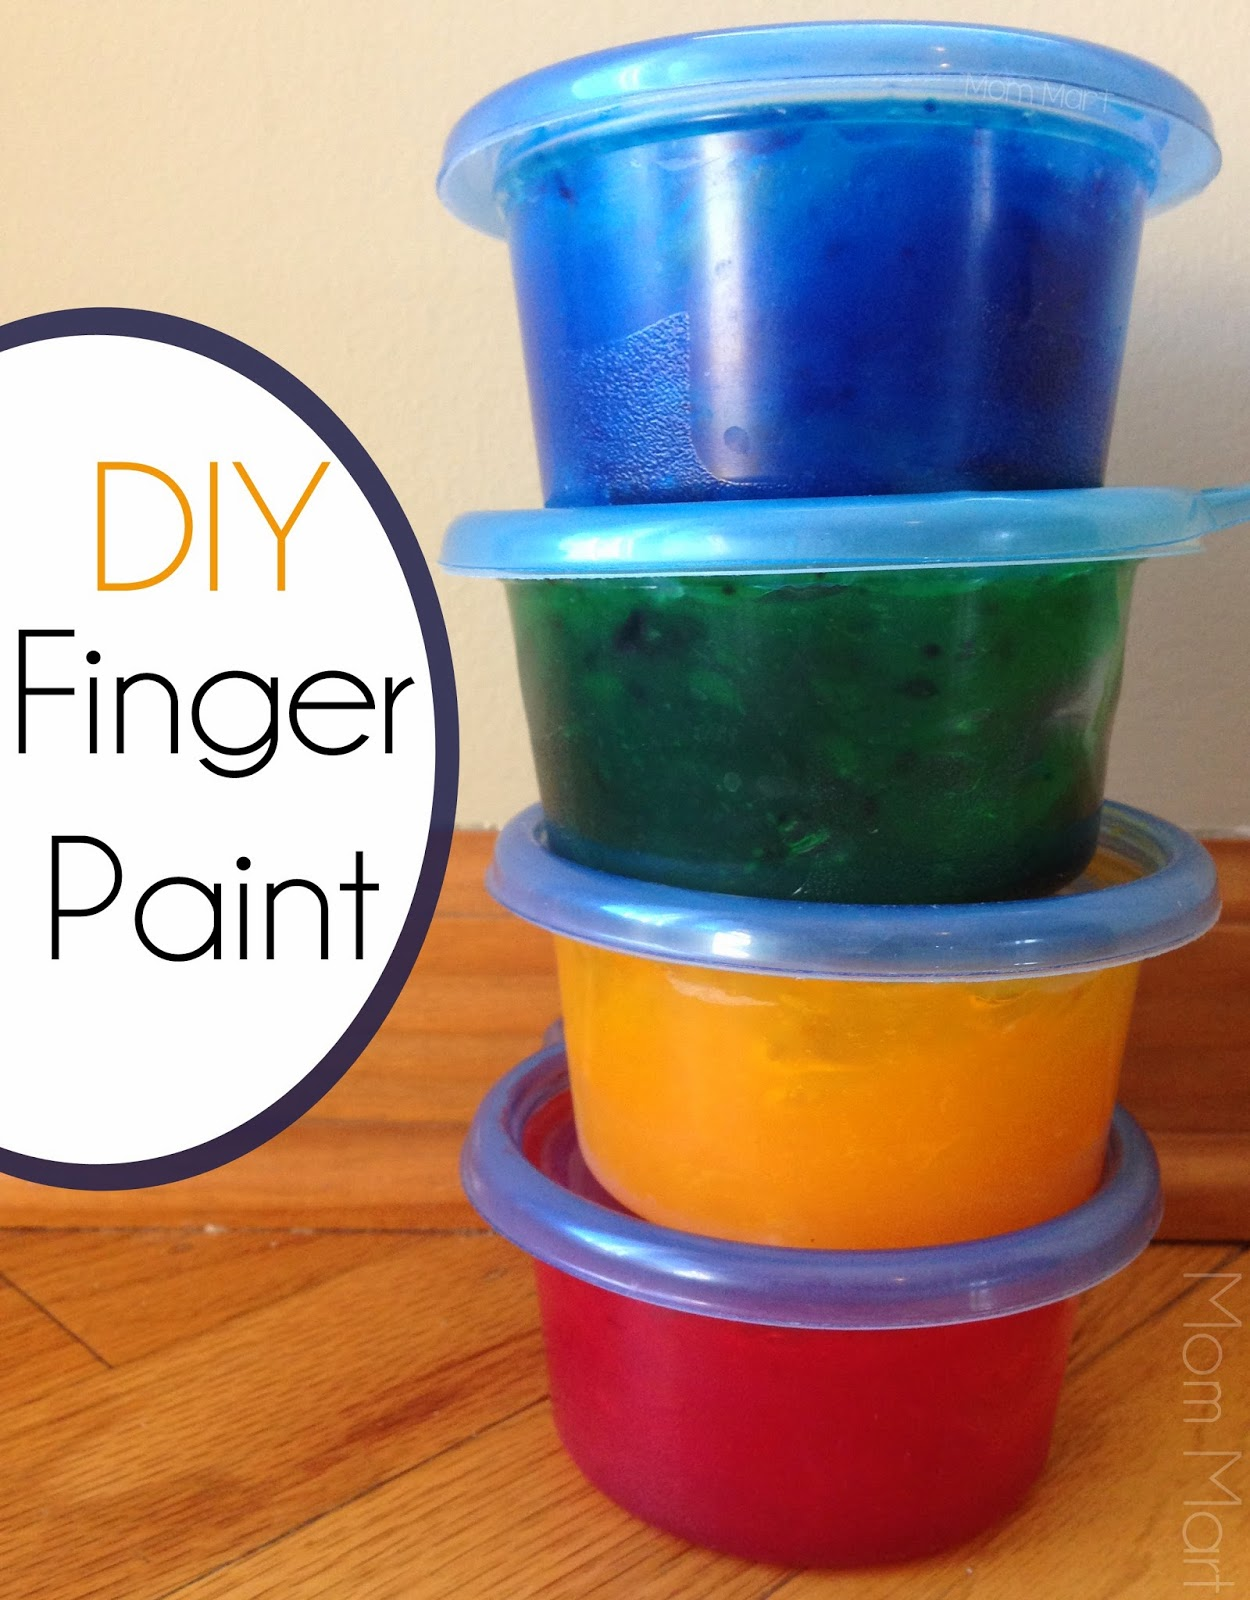 DIY Homemade Finger Paint #Recipe #DIY #Homemade #Tutorial #CraftsForKids